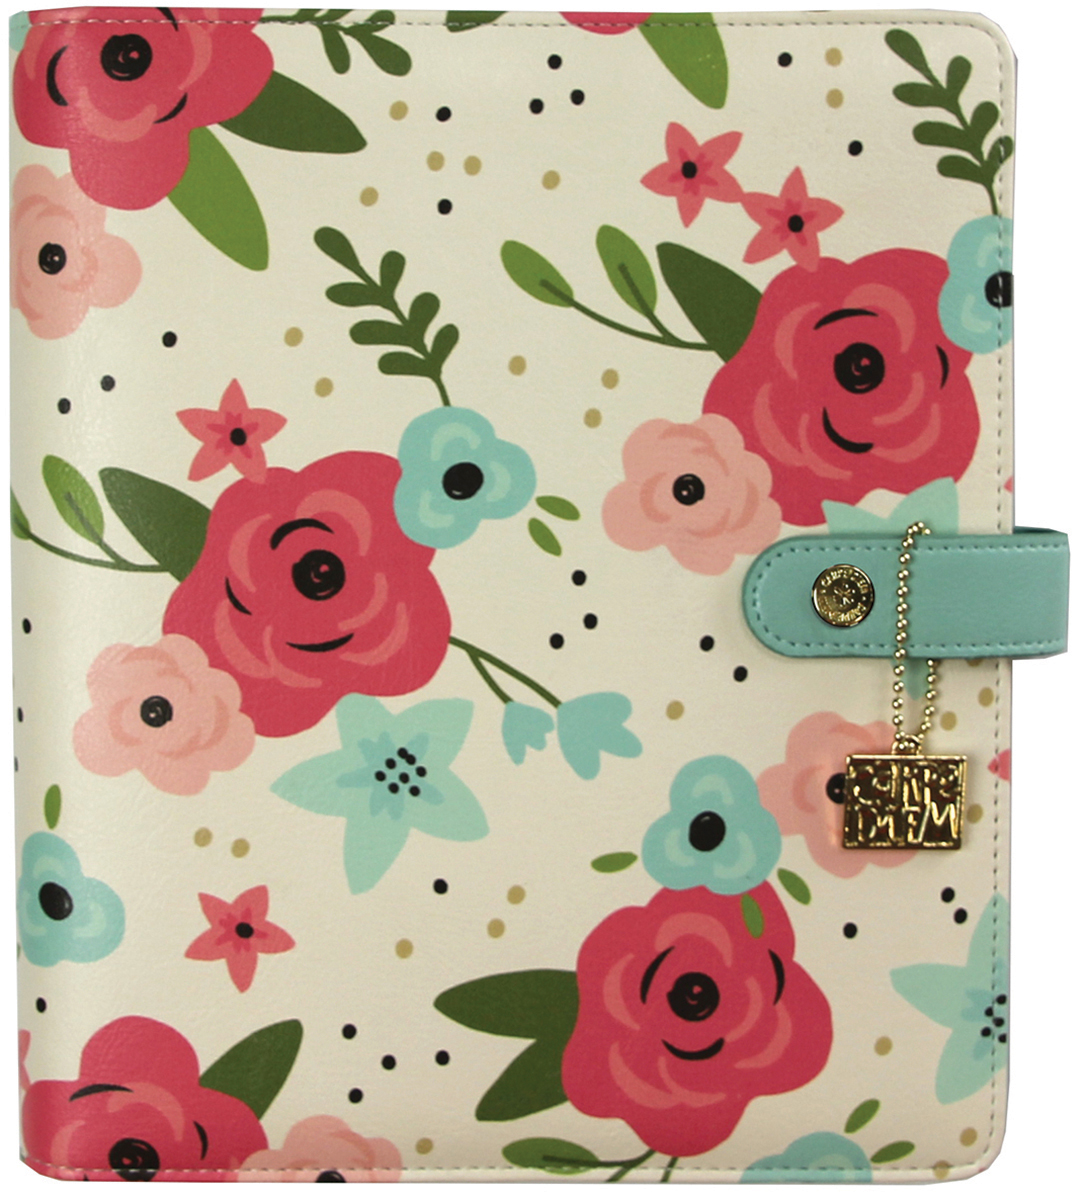 Carpe Diem A5 Planner Boxed Set-Cream Blossom, Bloom